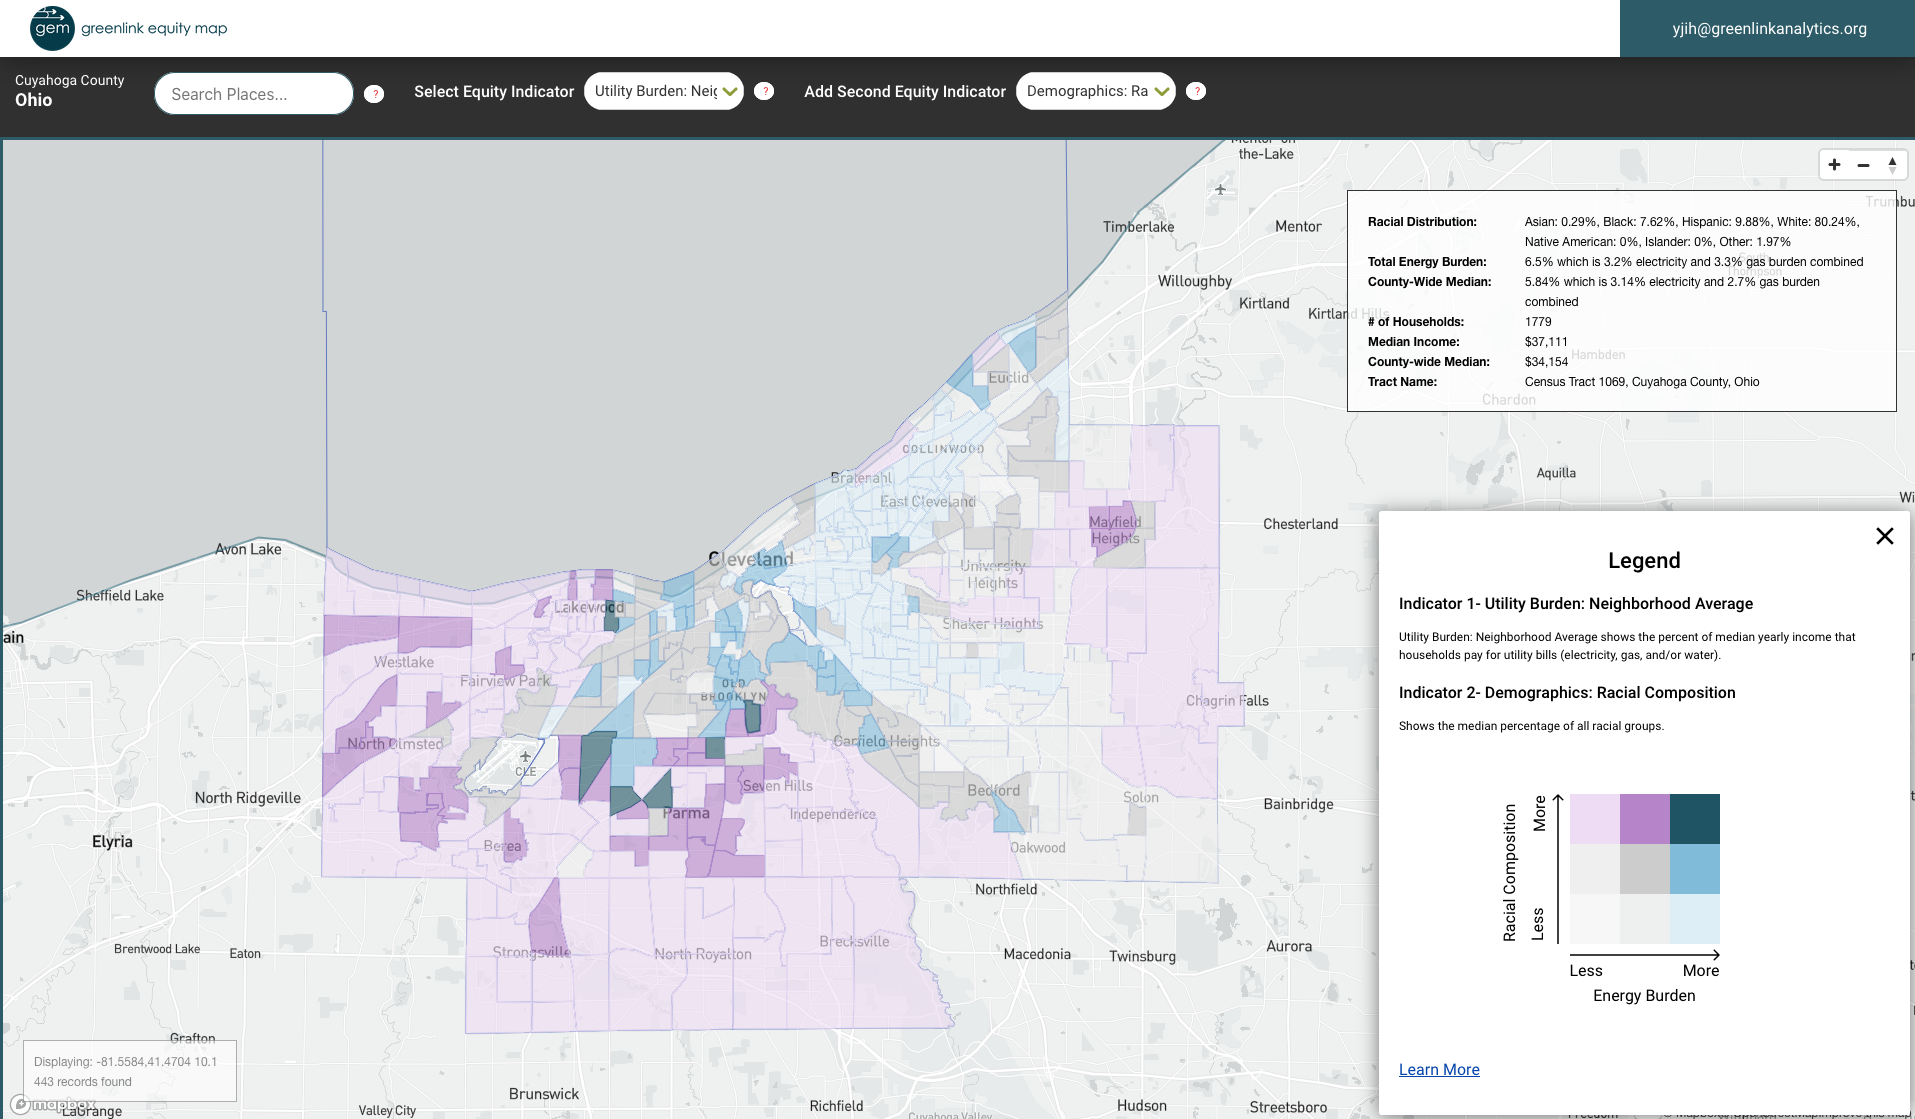 A Greenlink Equity Map showing energy burden in predominantly white communities in Cleveland.